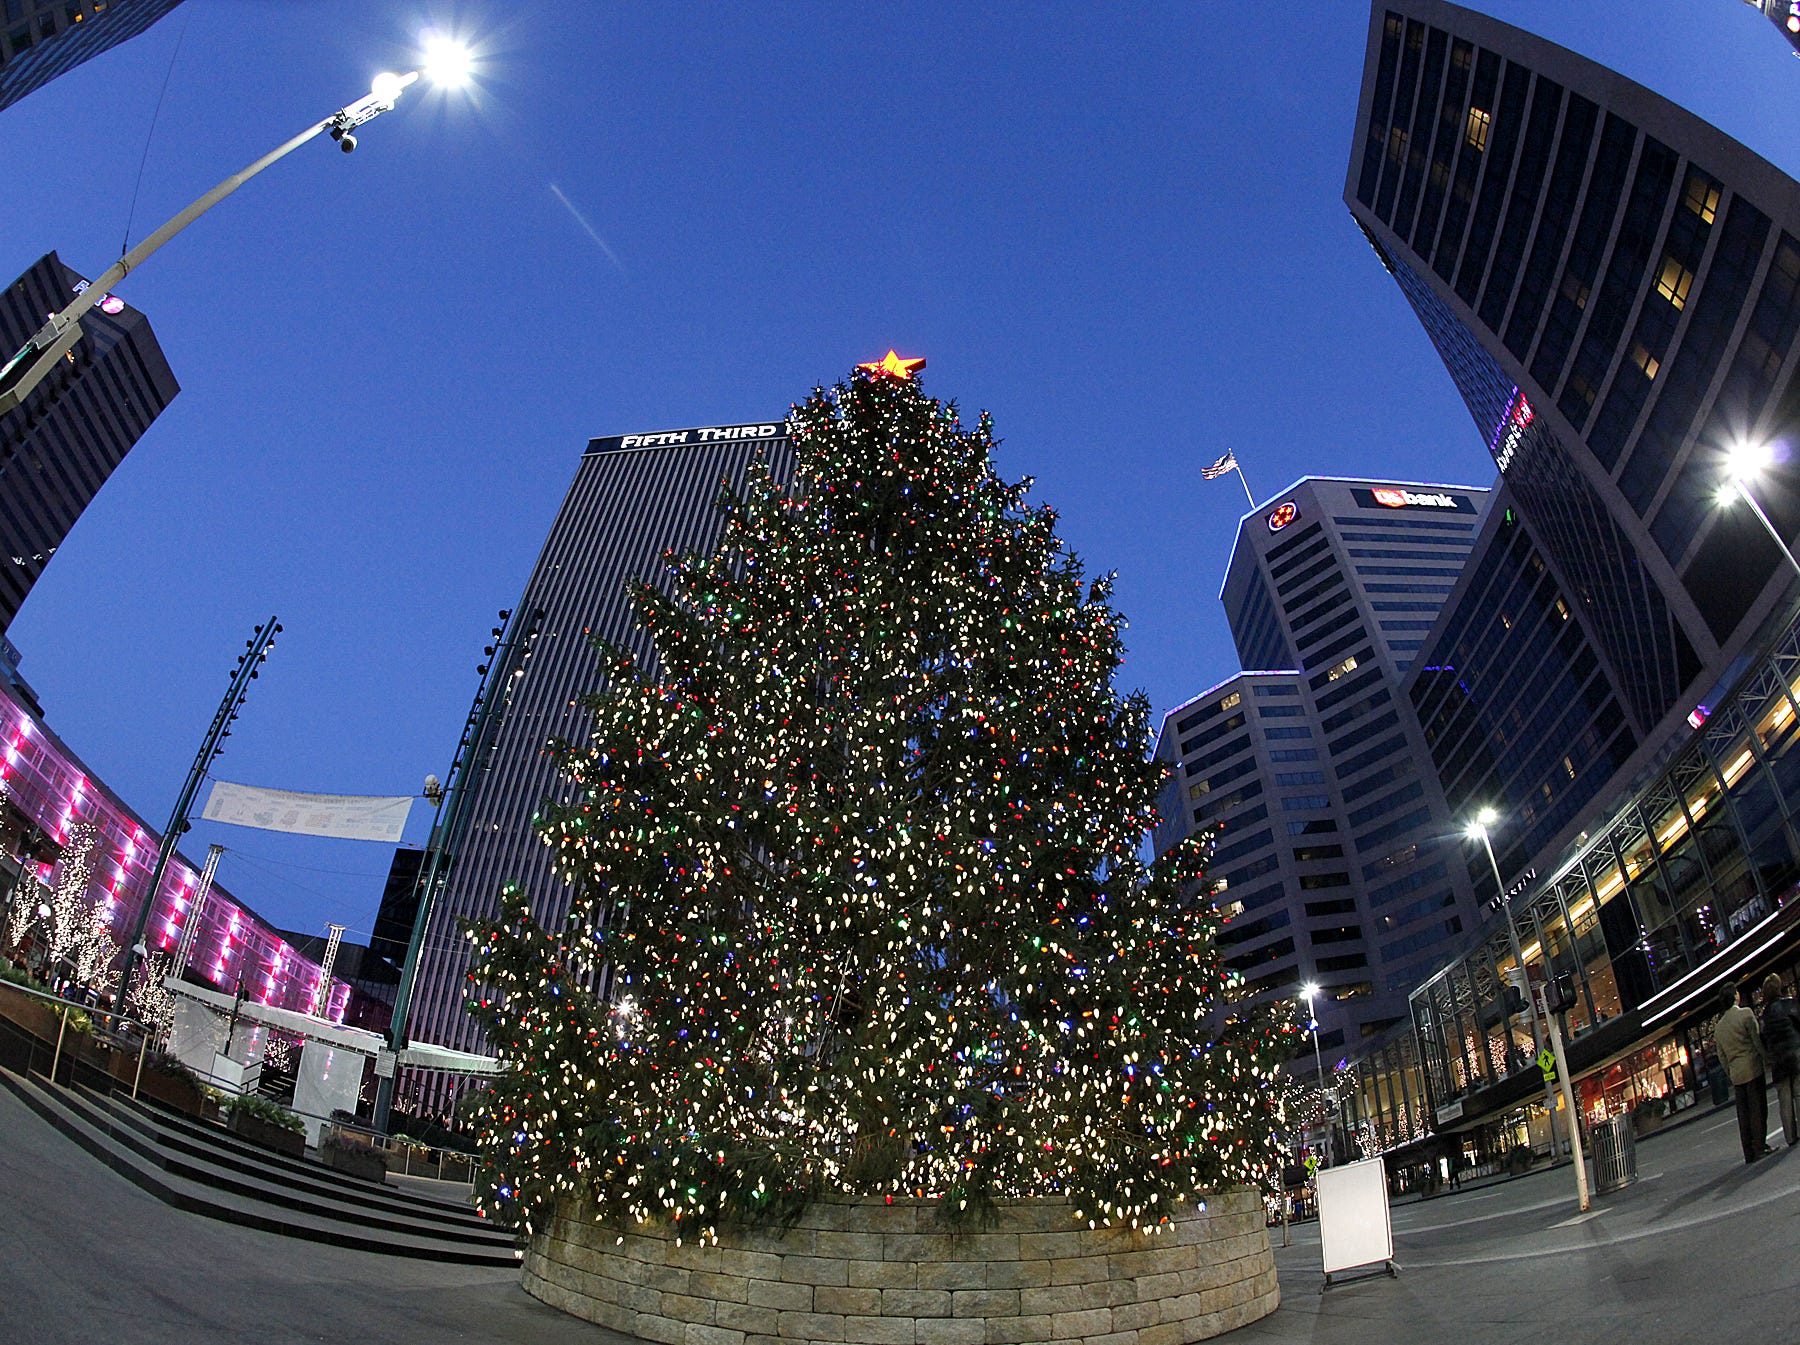 2011: Lights shine bright on the Christmas tree on Fountain Square, on Sunday, December 18.